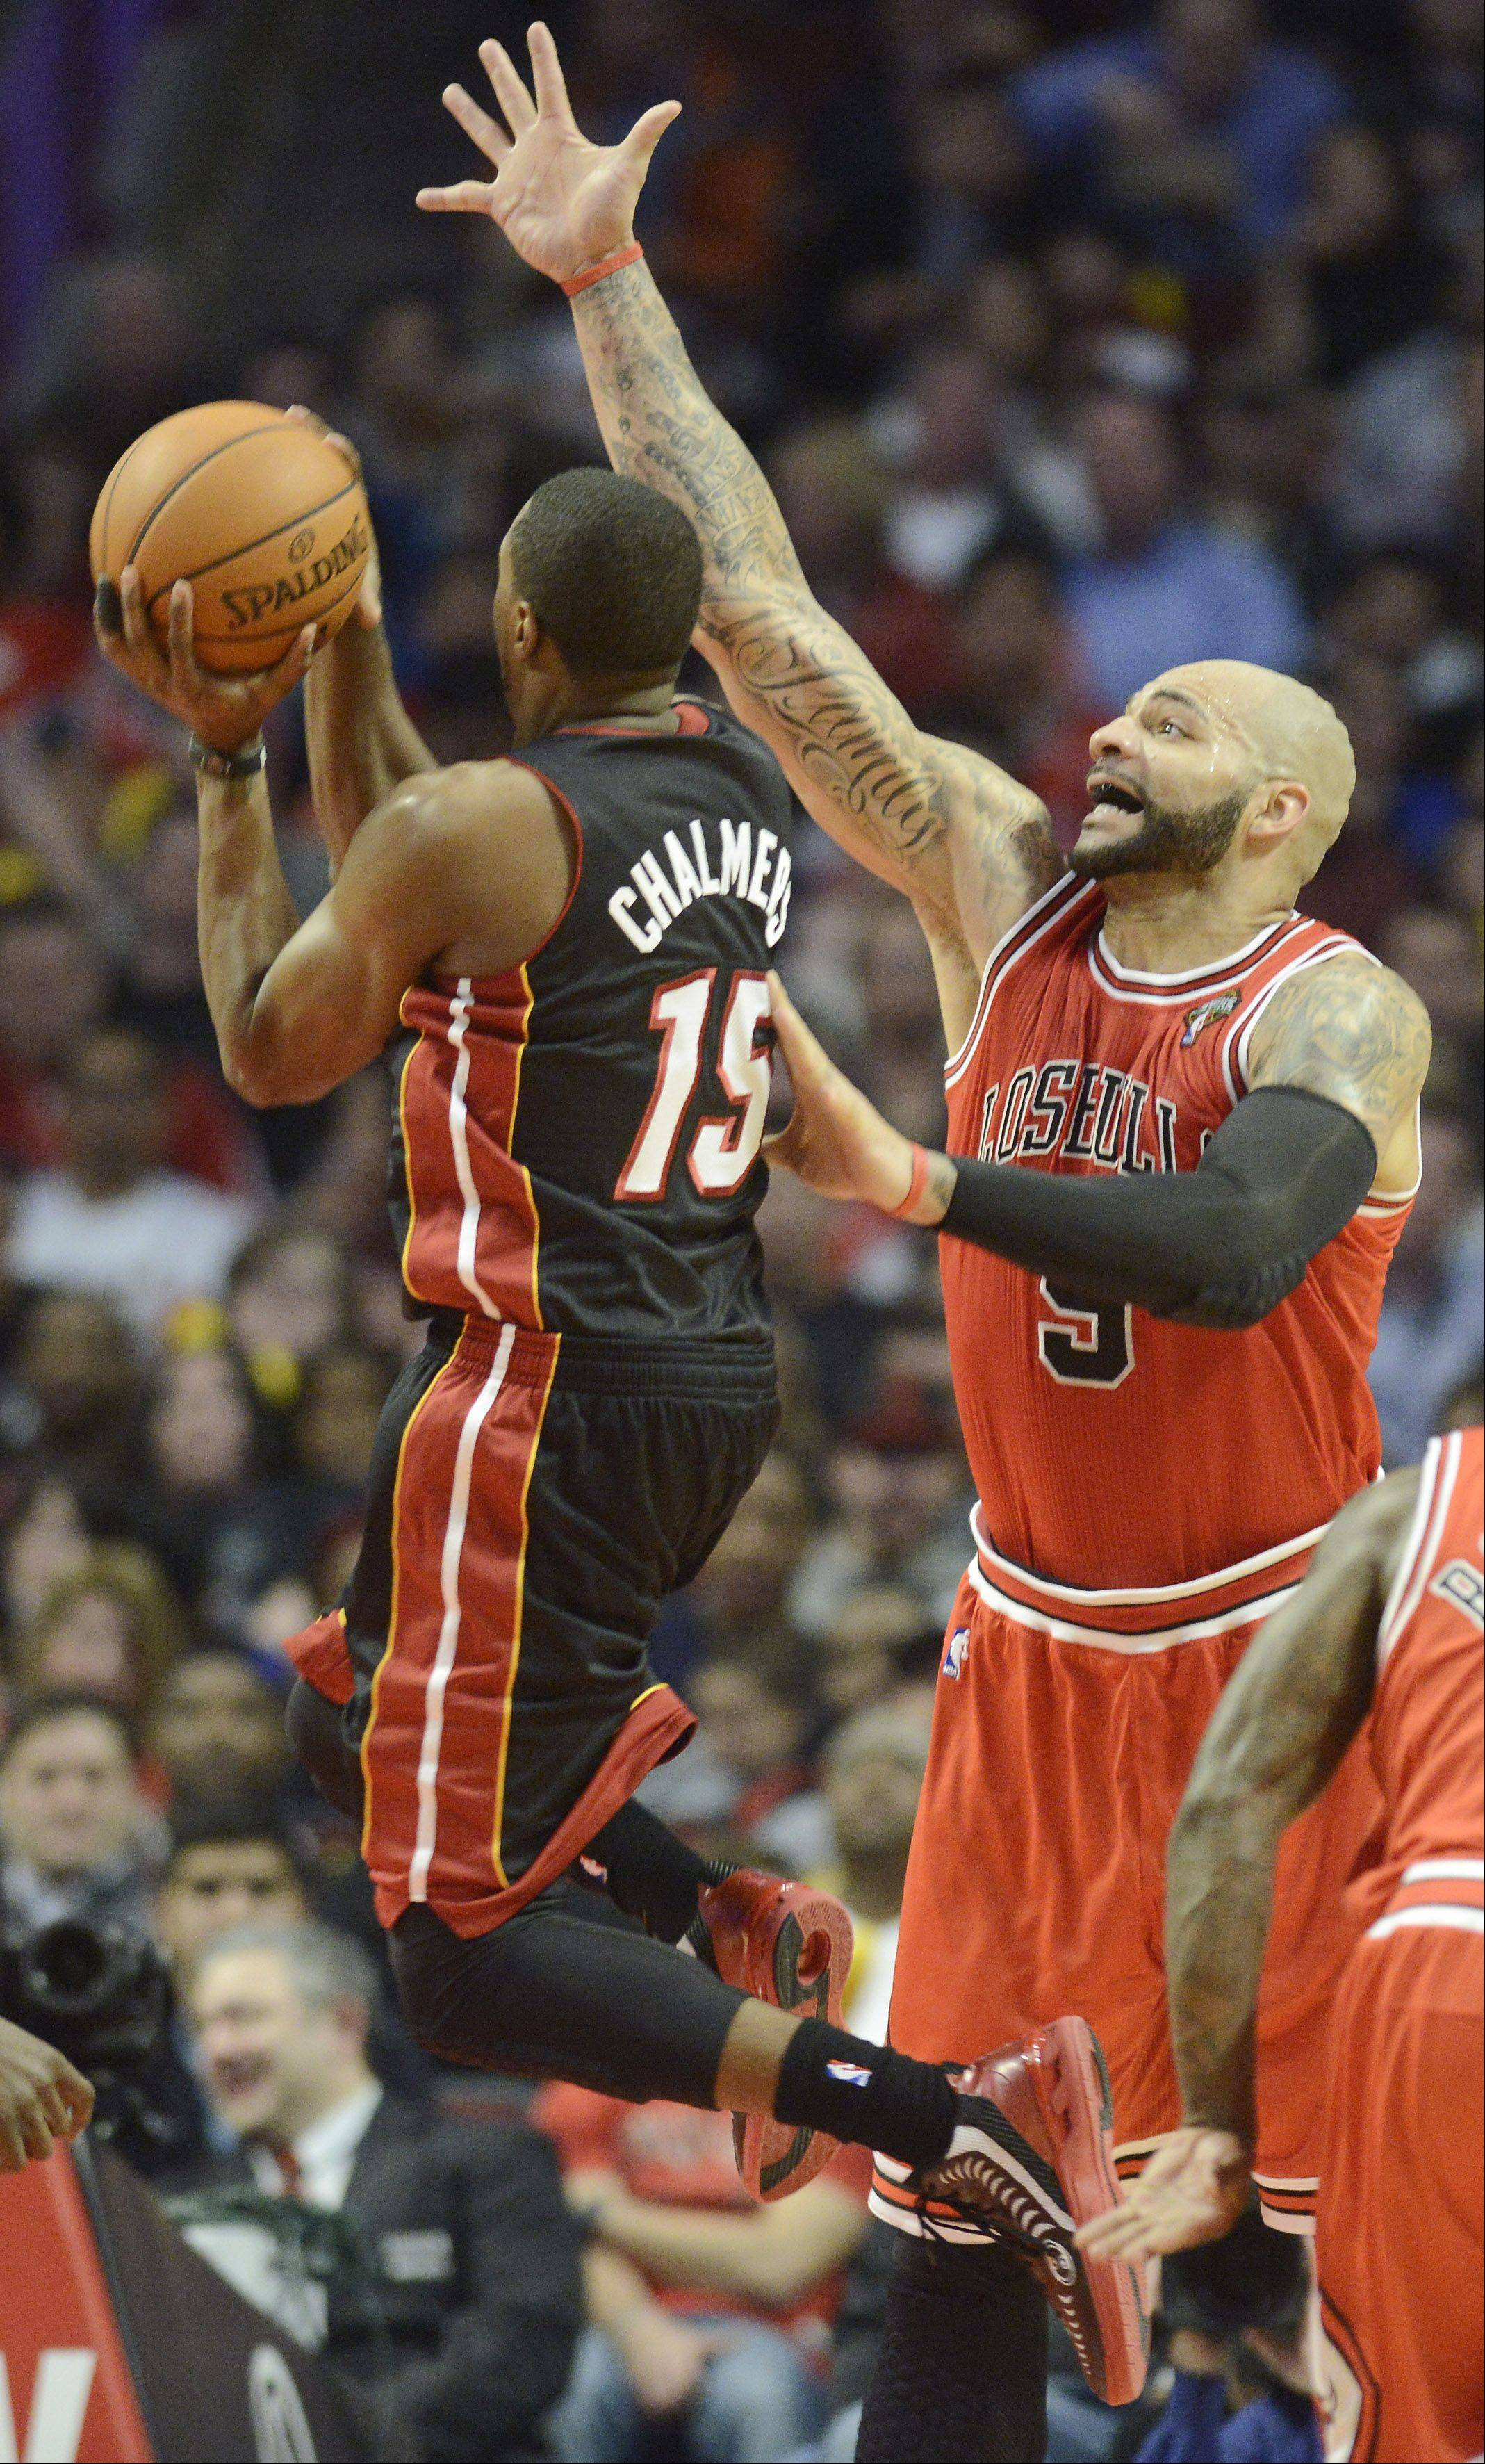 LeBron James of the Miami Heat, left, denies Carlos Boozer of the Bulls at the basket during Wednesday's game.